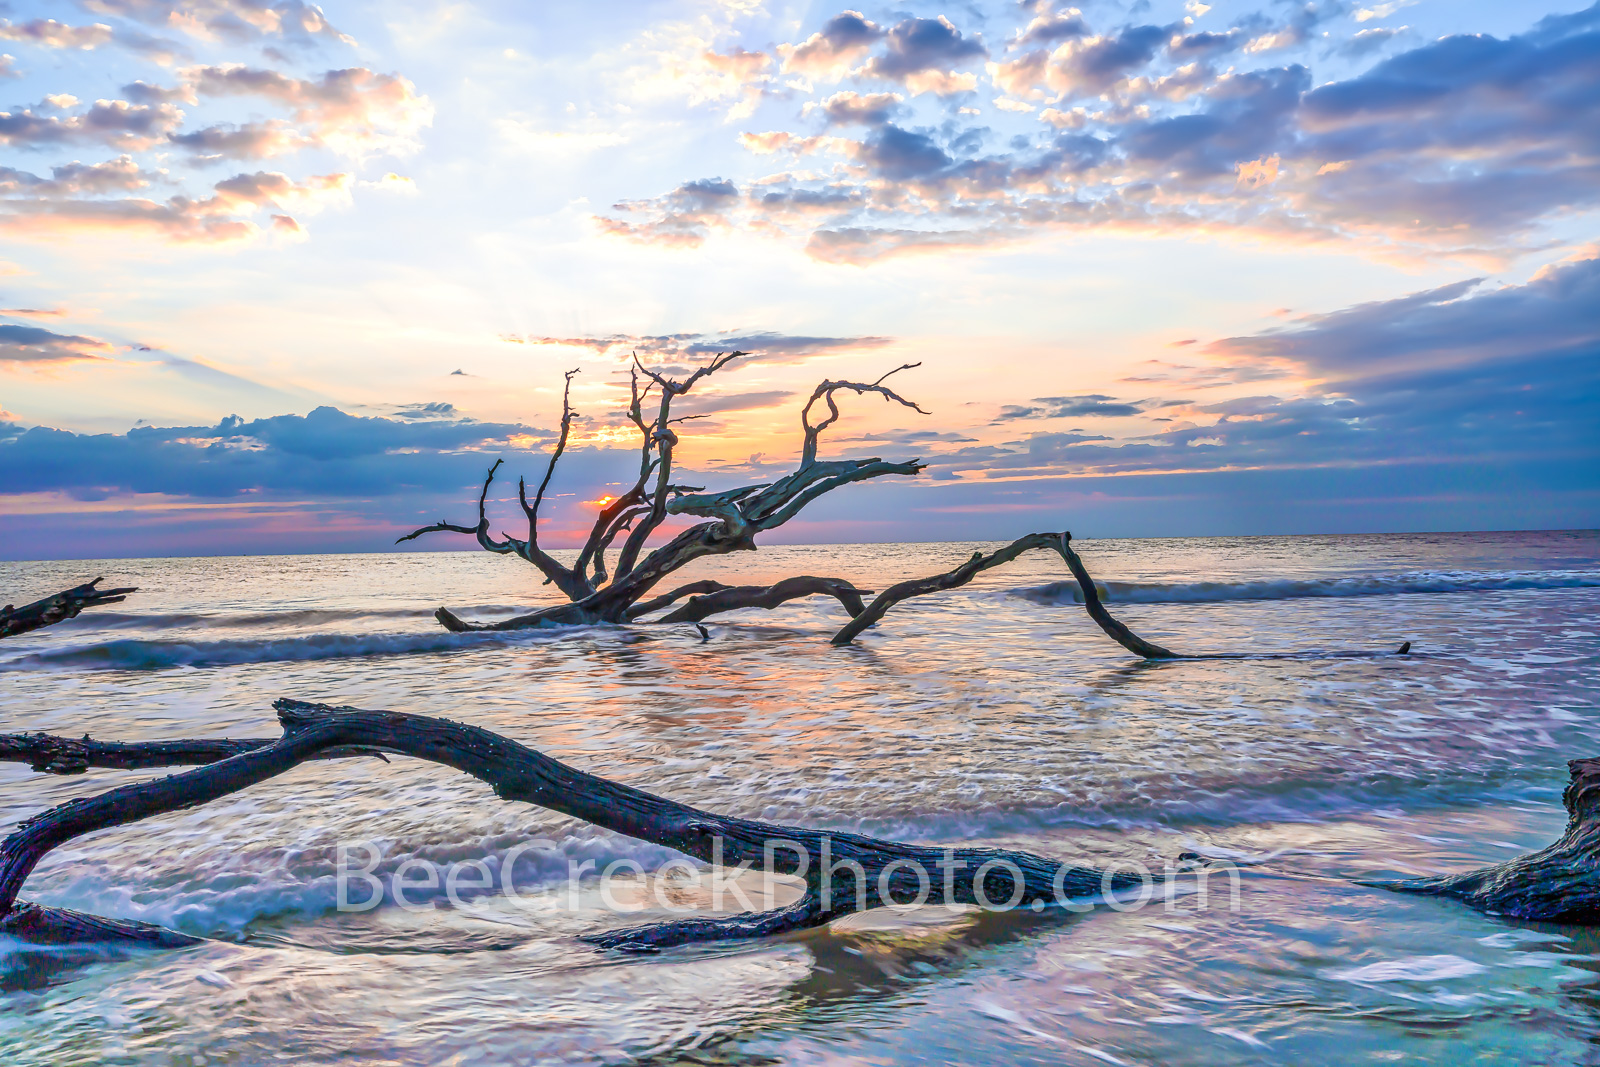 driftwood beach, driftwood, jekyll island, sunrise, trees, tide, deadwood, surf, rays, Alantic ocean, georgia, golden isles, east coast, coastal, ocean, , photo